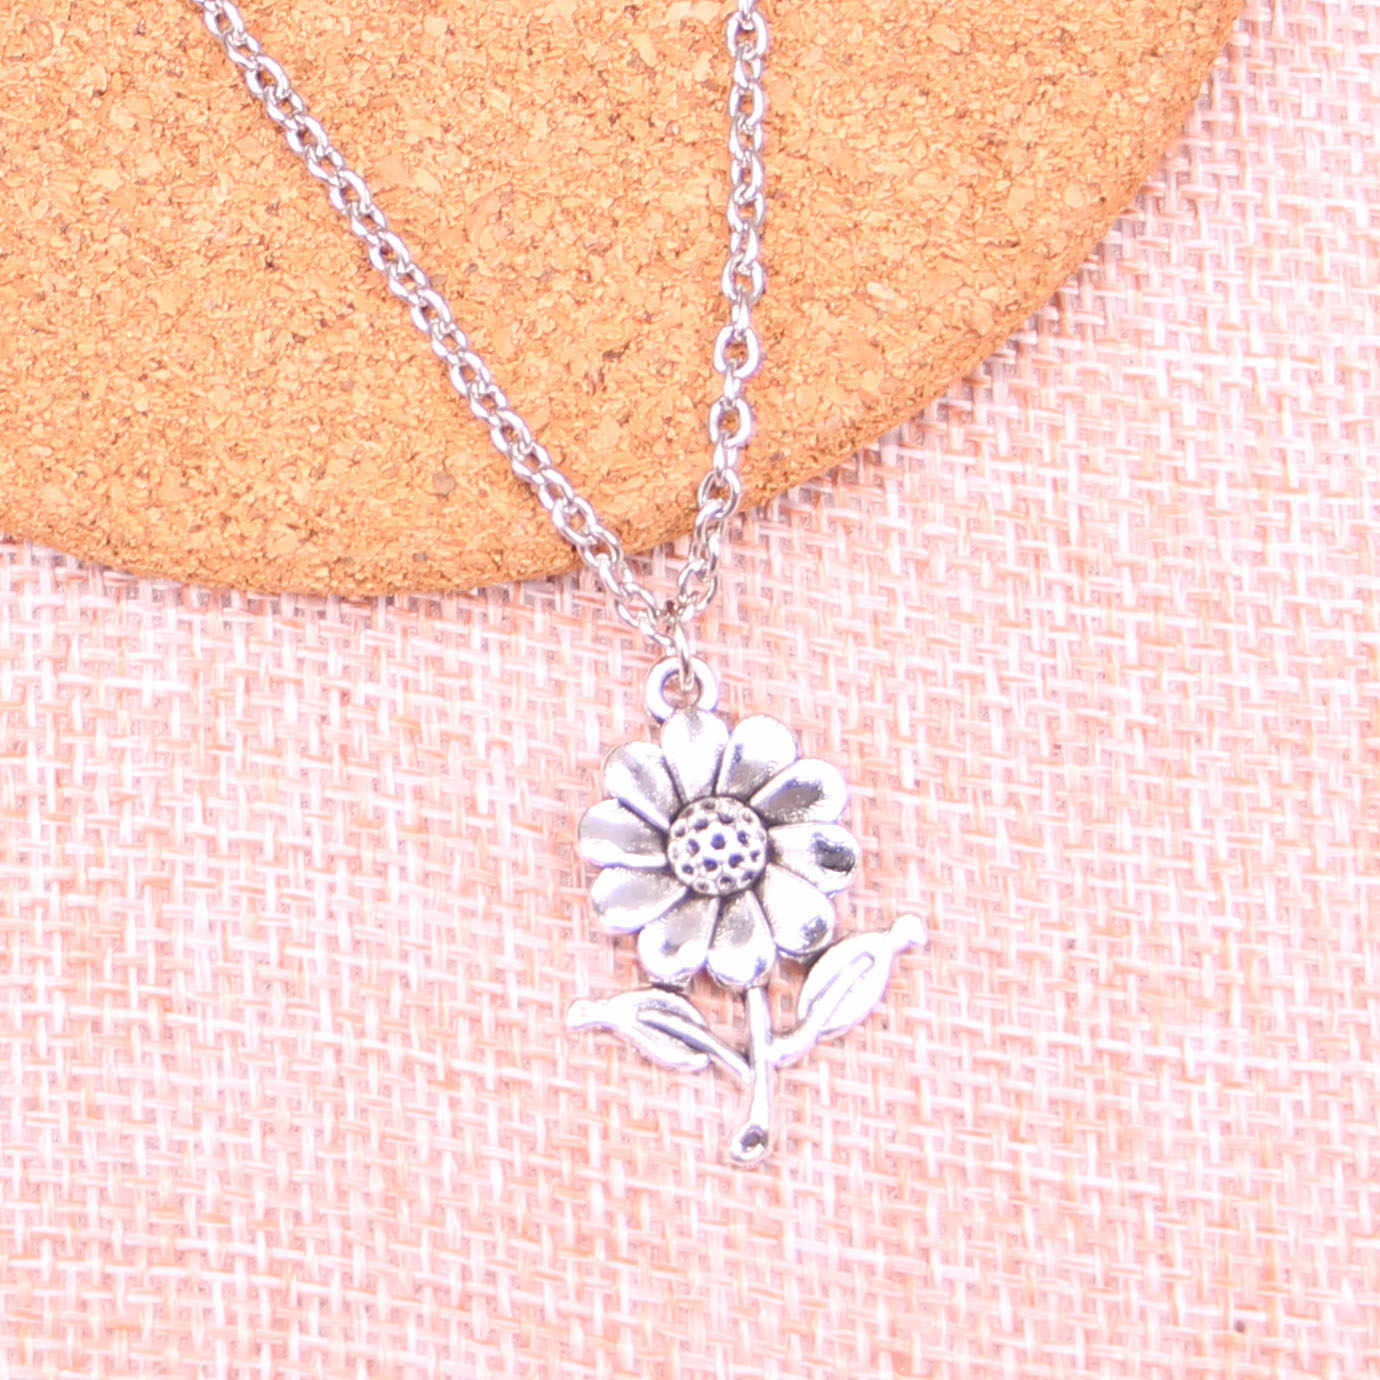 Fashion Antique Silver Color 27*20mm sunflower flower Pendant Necklace,Handmade Necklace Dropship Suppliers